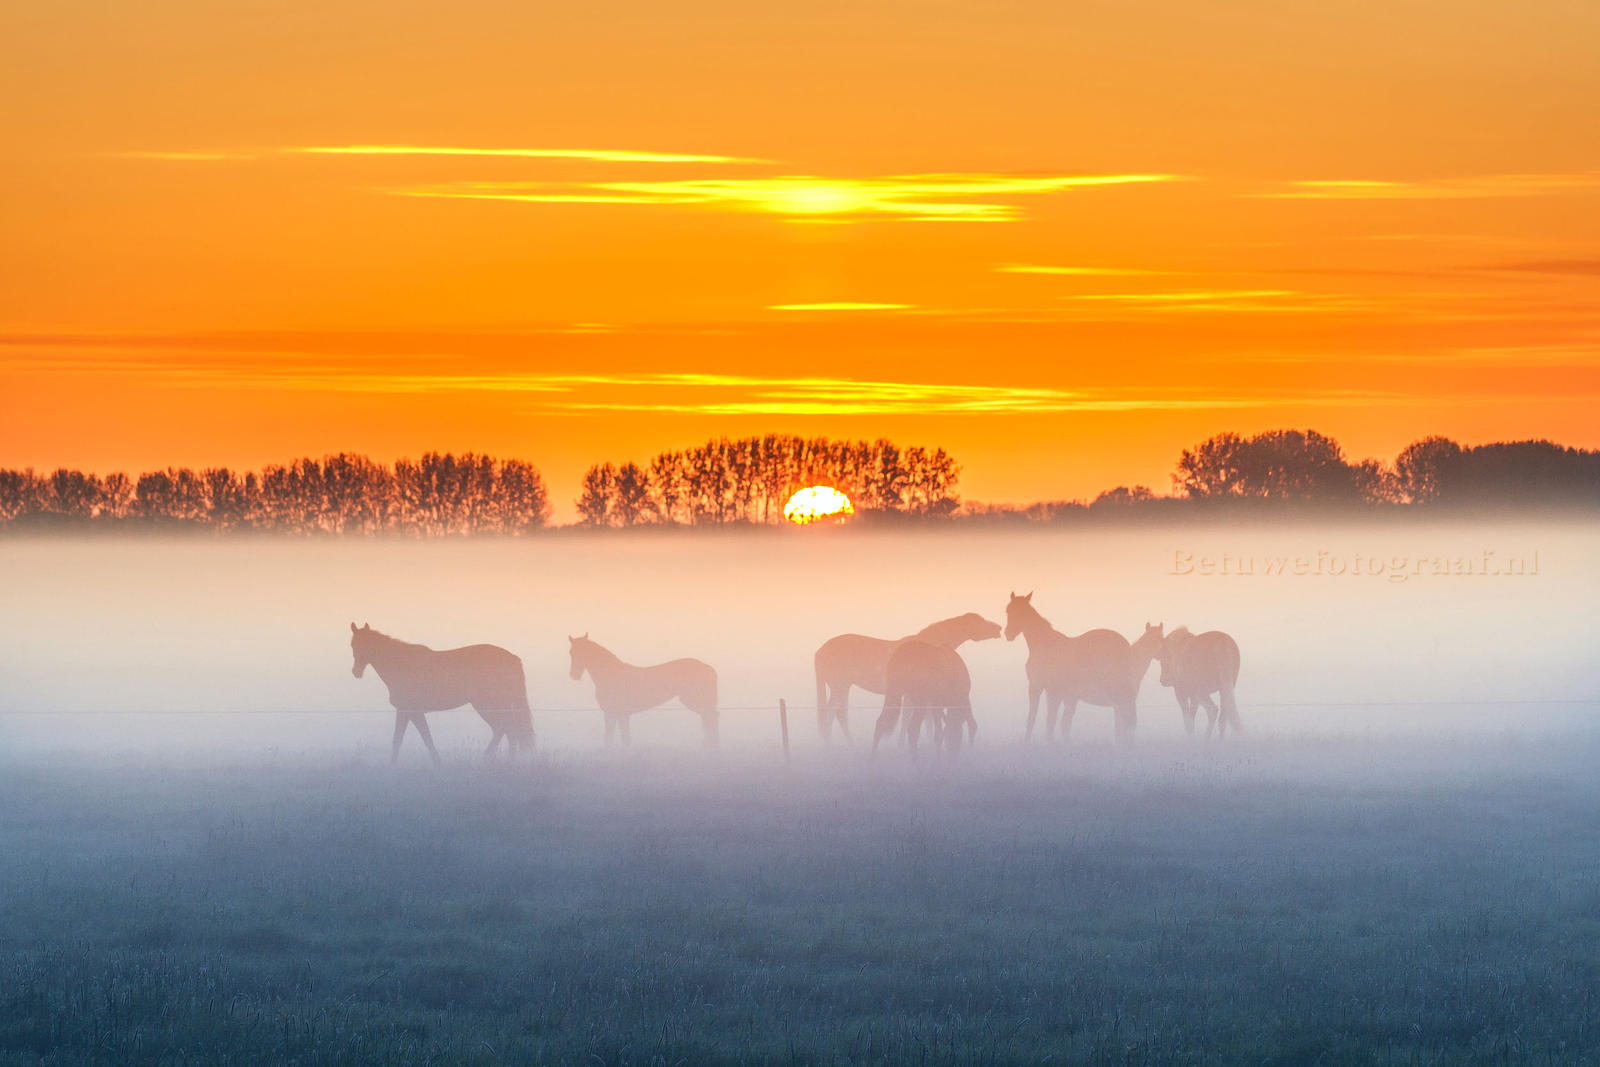 Horses in the mist by Betuwefotograaf